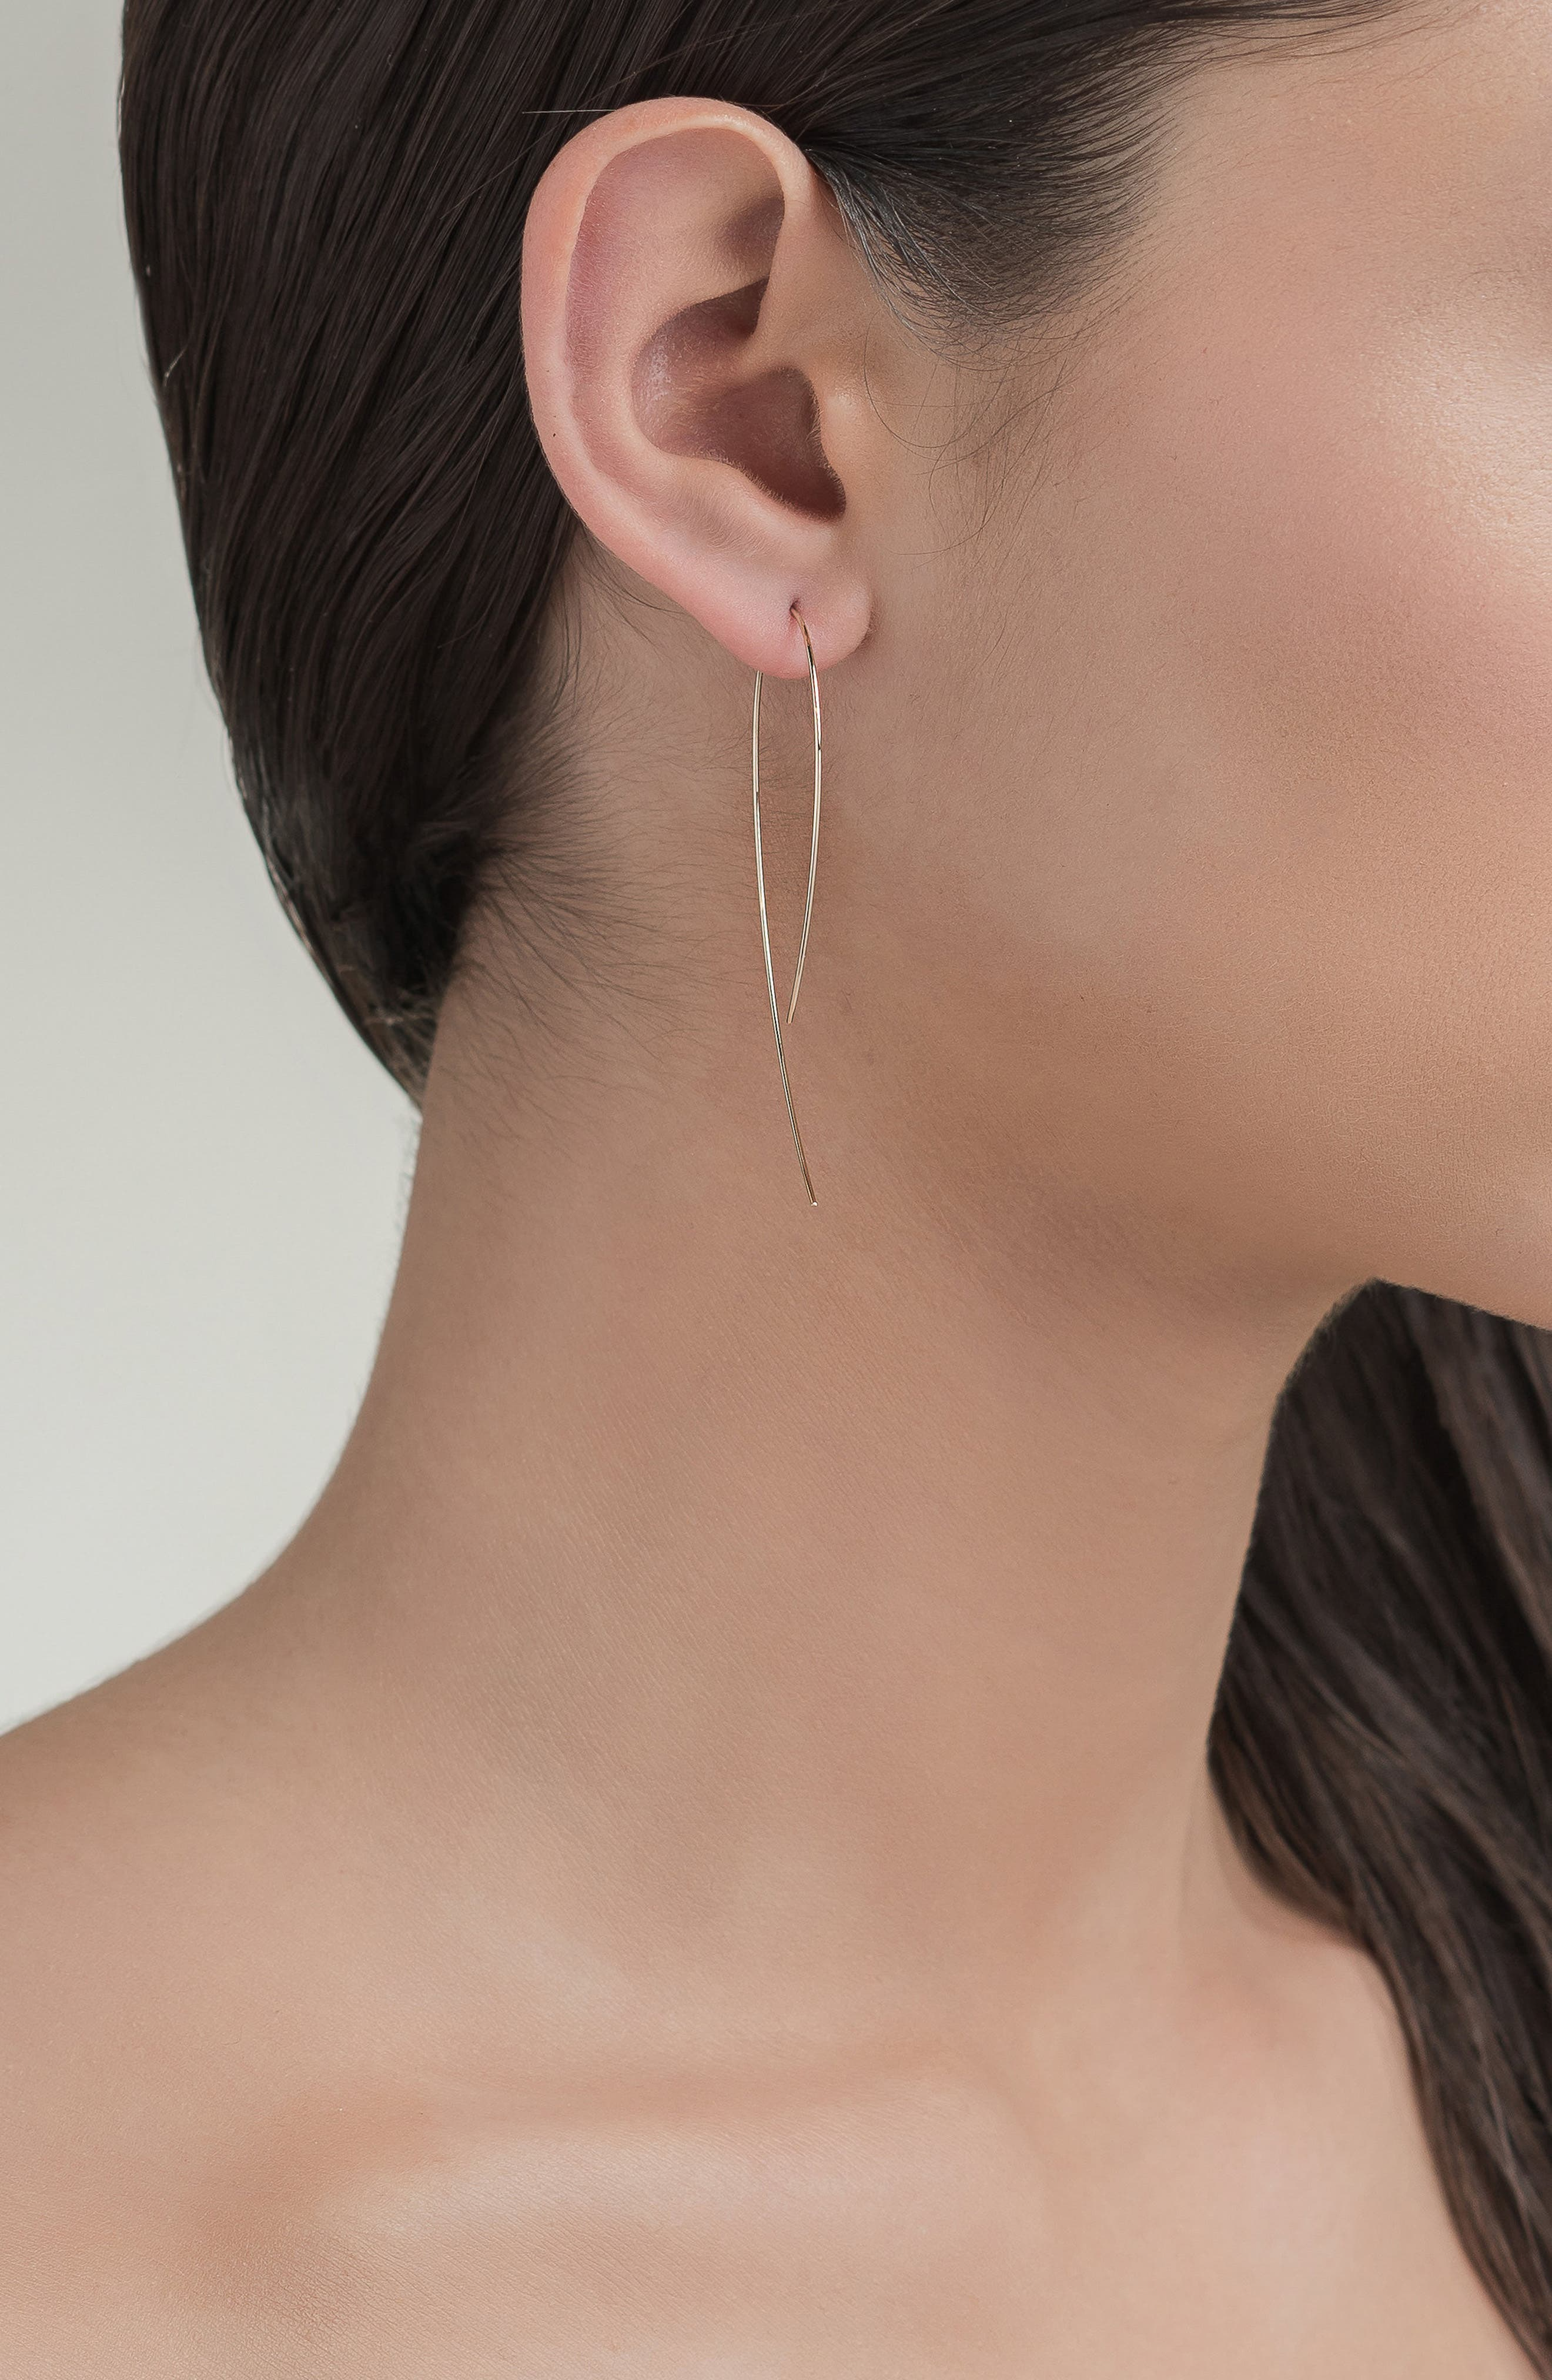 'Hooked on Hoop' Earrings,                             Alternate thumbnail 4, color,                             YELLOW GOLD